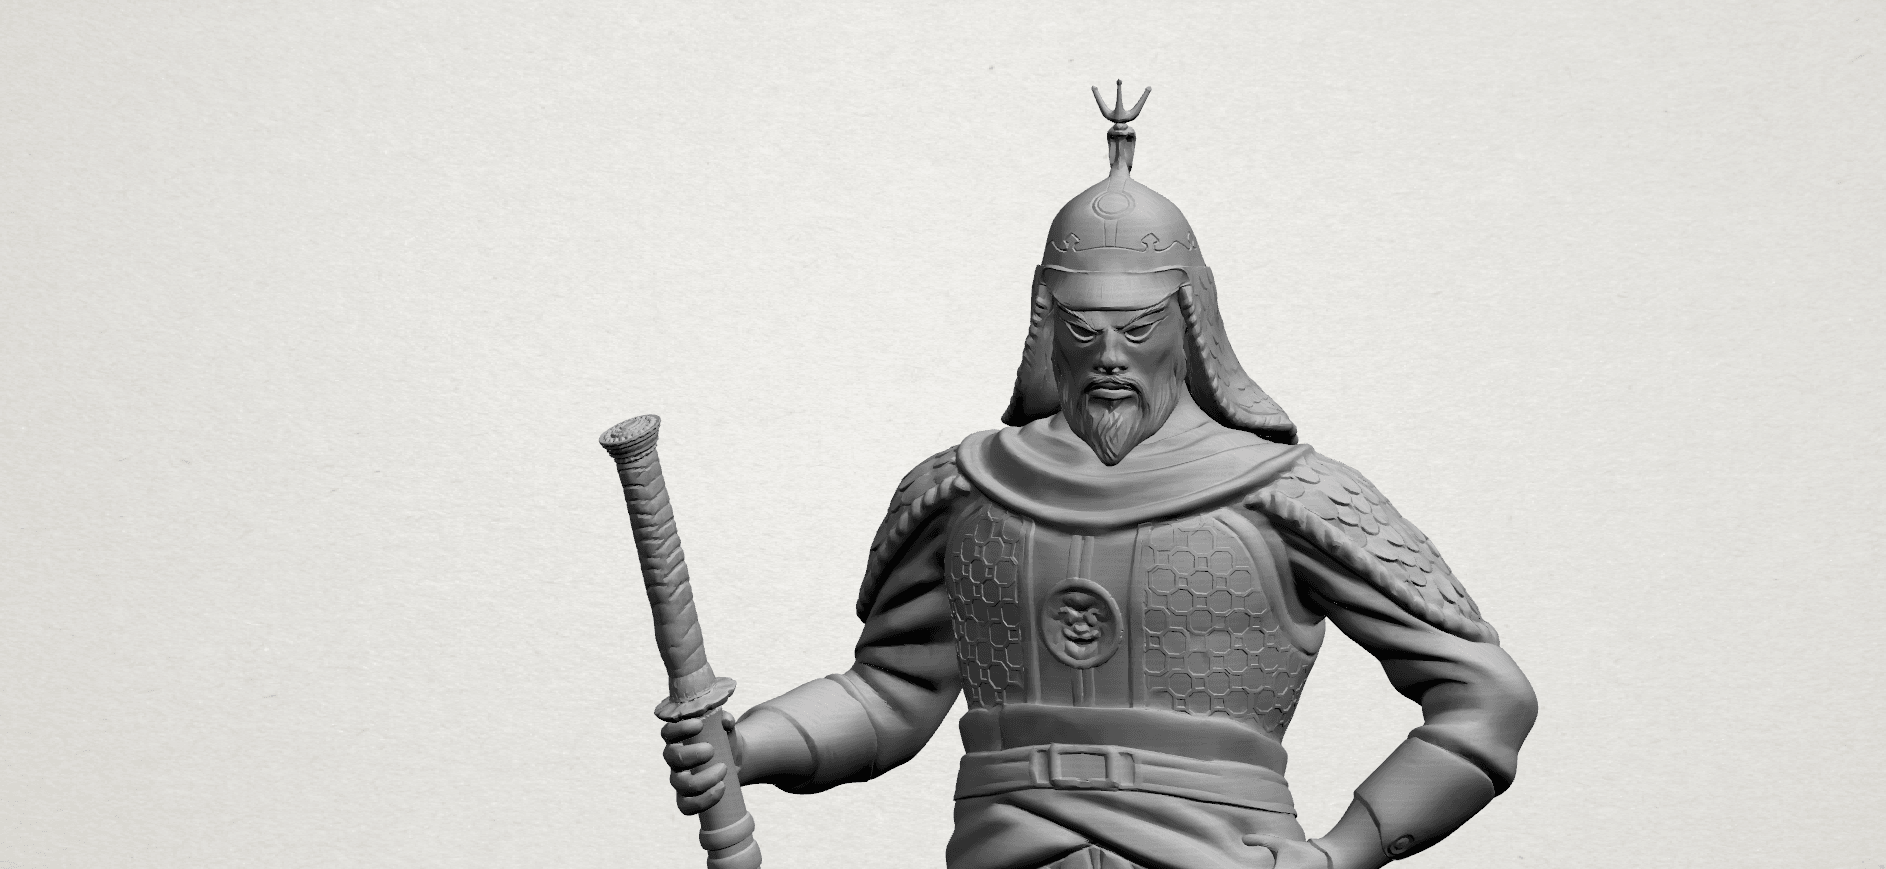 Age of Empire - warrior -A15.png Download free STL file Age of Empire - warrio • 3D print design, GeorgesNikkei